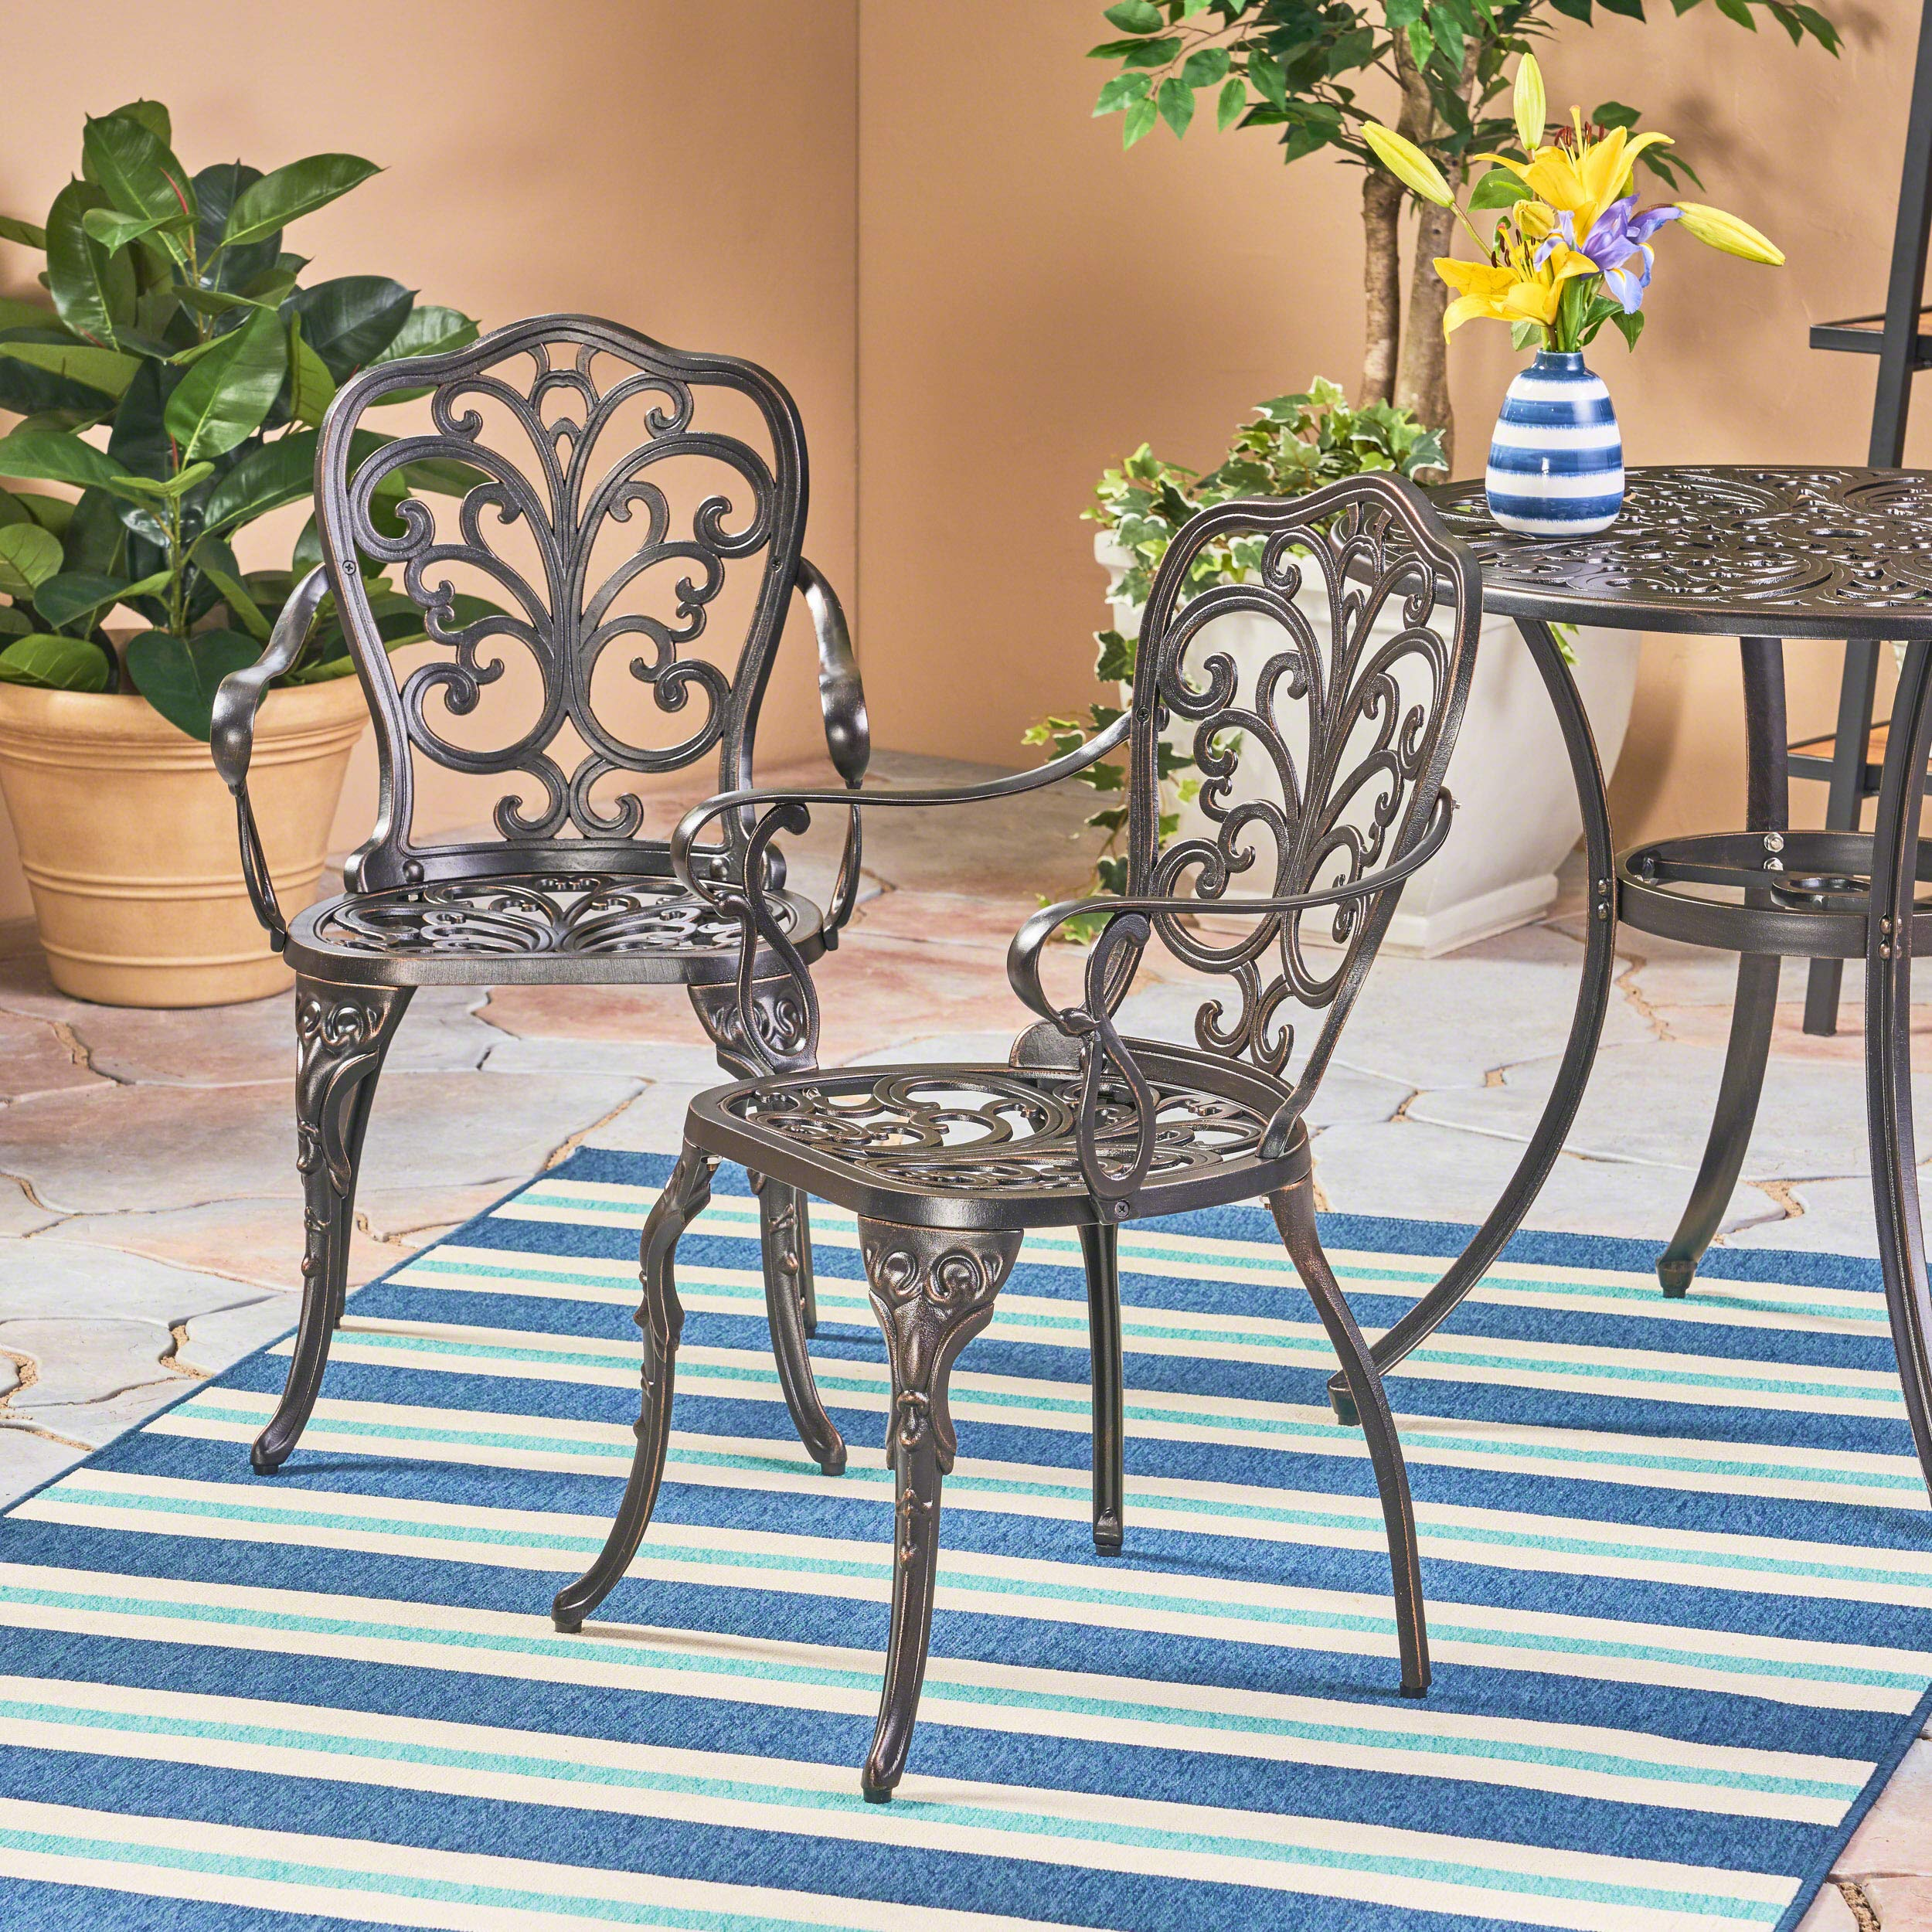 Christopher Knight Home Buddy Outdoor Cast Aluminum Dining Chair (Set of 2), Shiny Copper